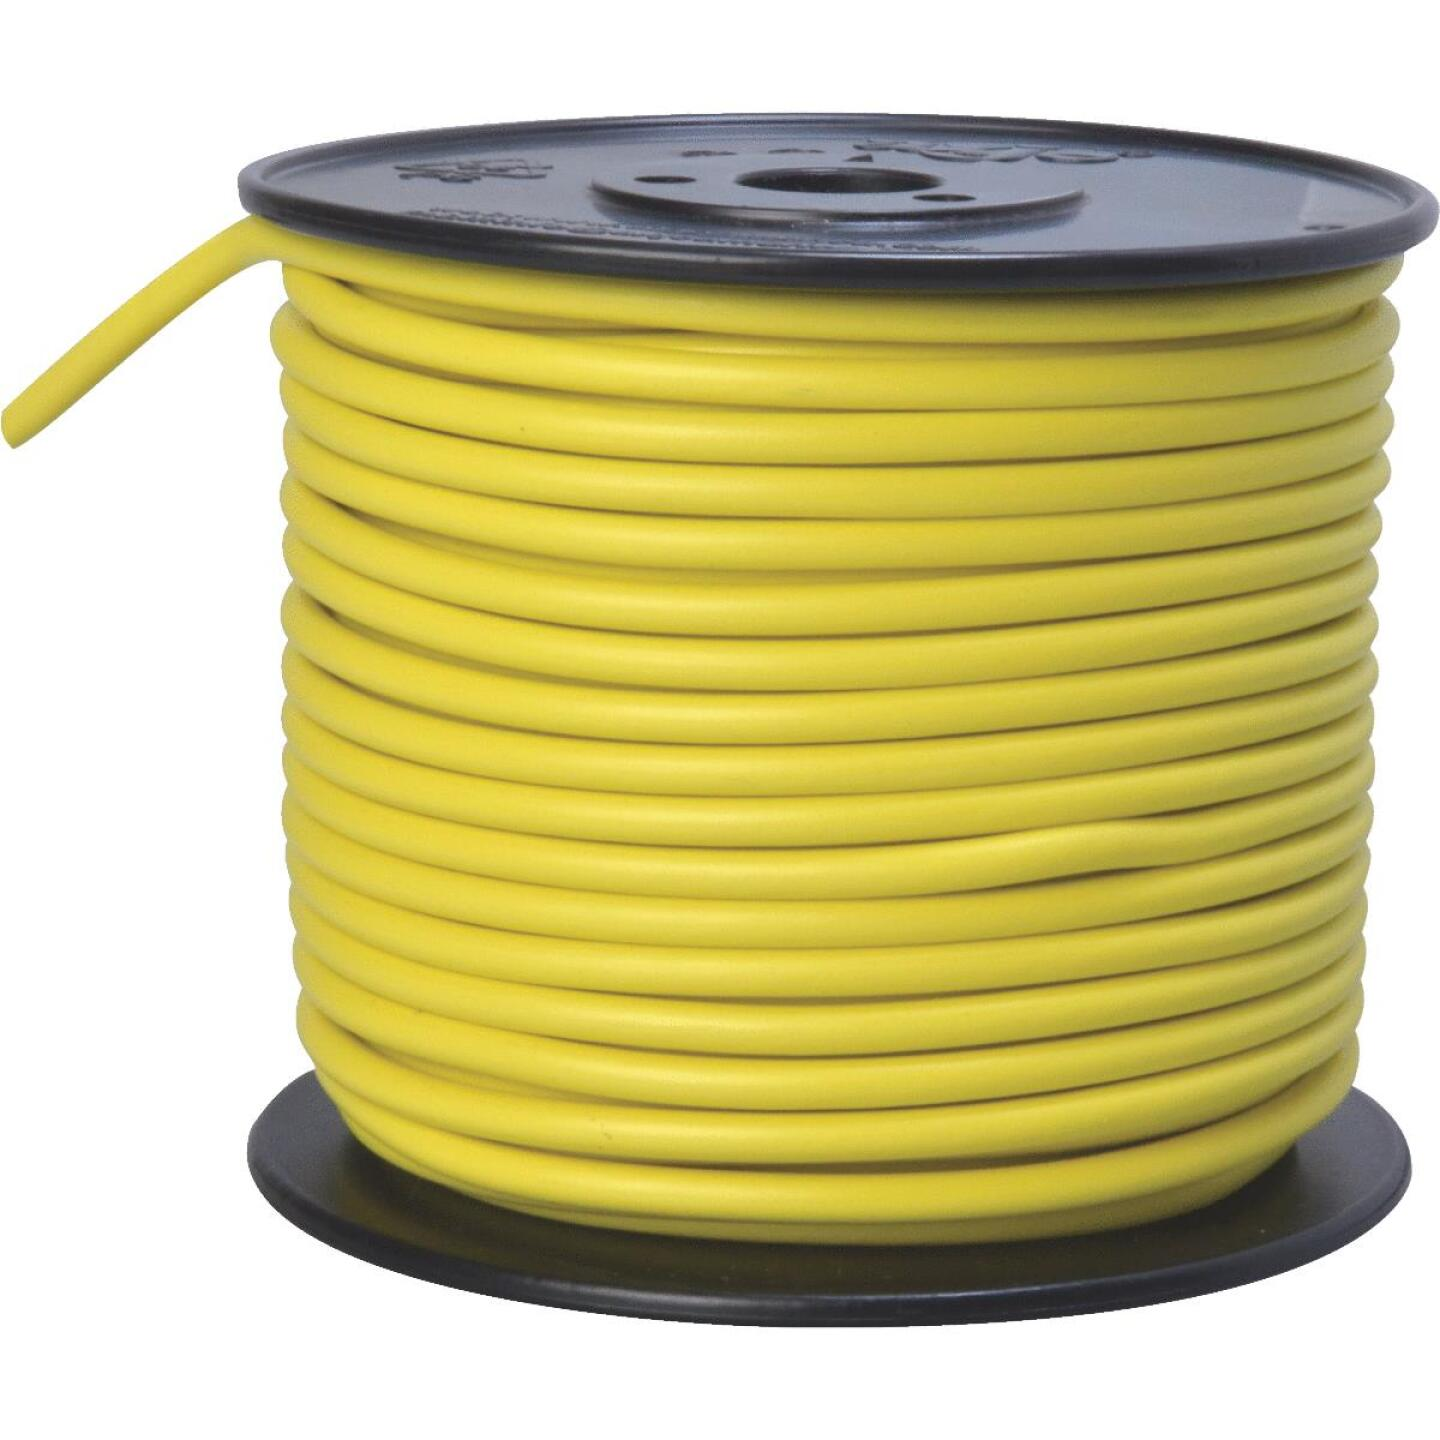 ROAD POWER 100 Ft. 10 Ga. PVC-Coated Primary Wire, Yellow Image 1